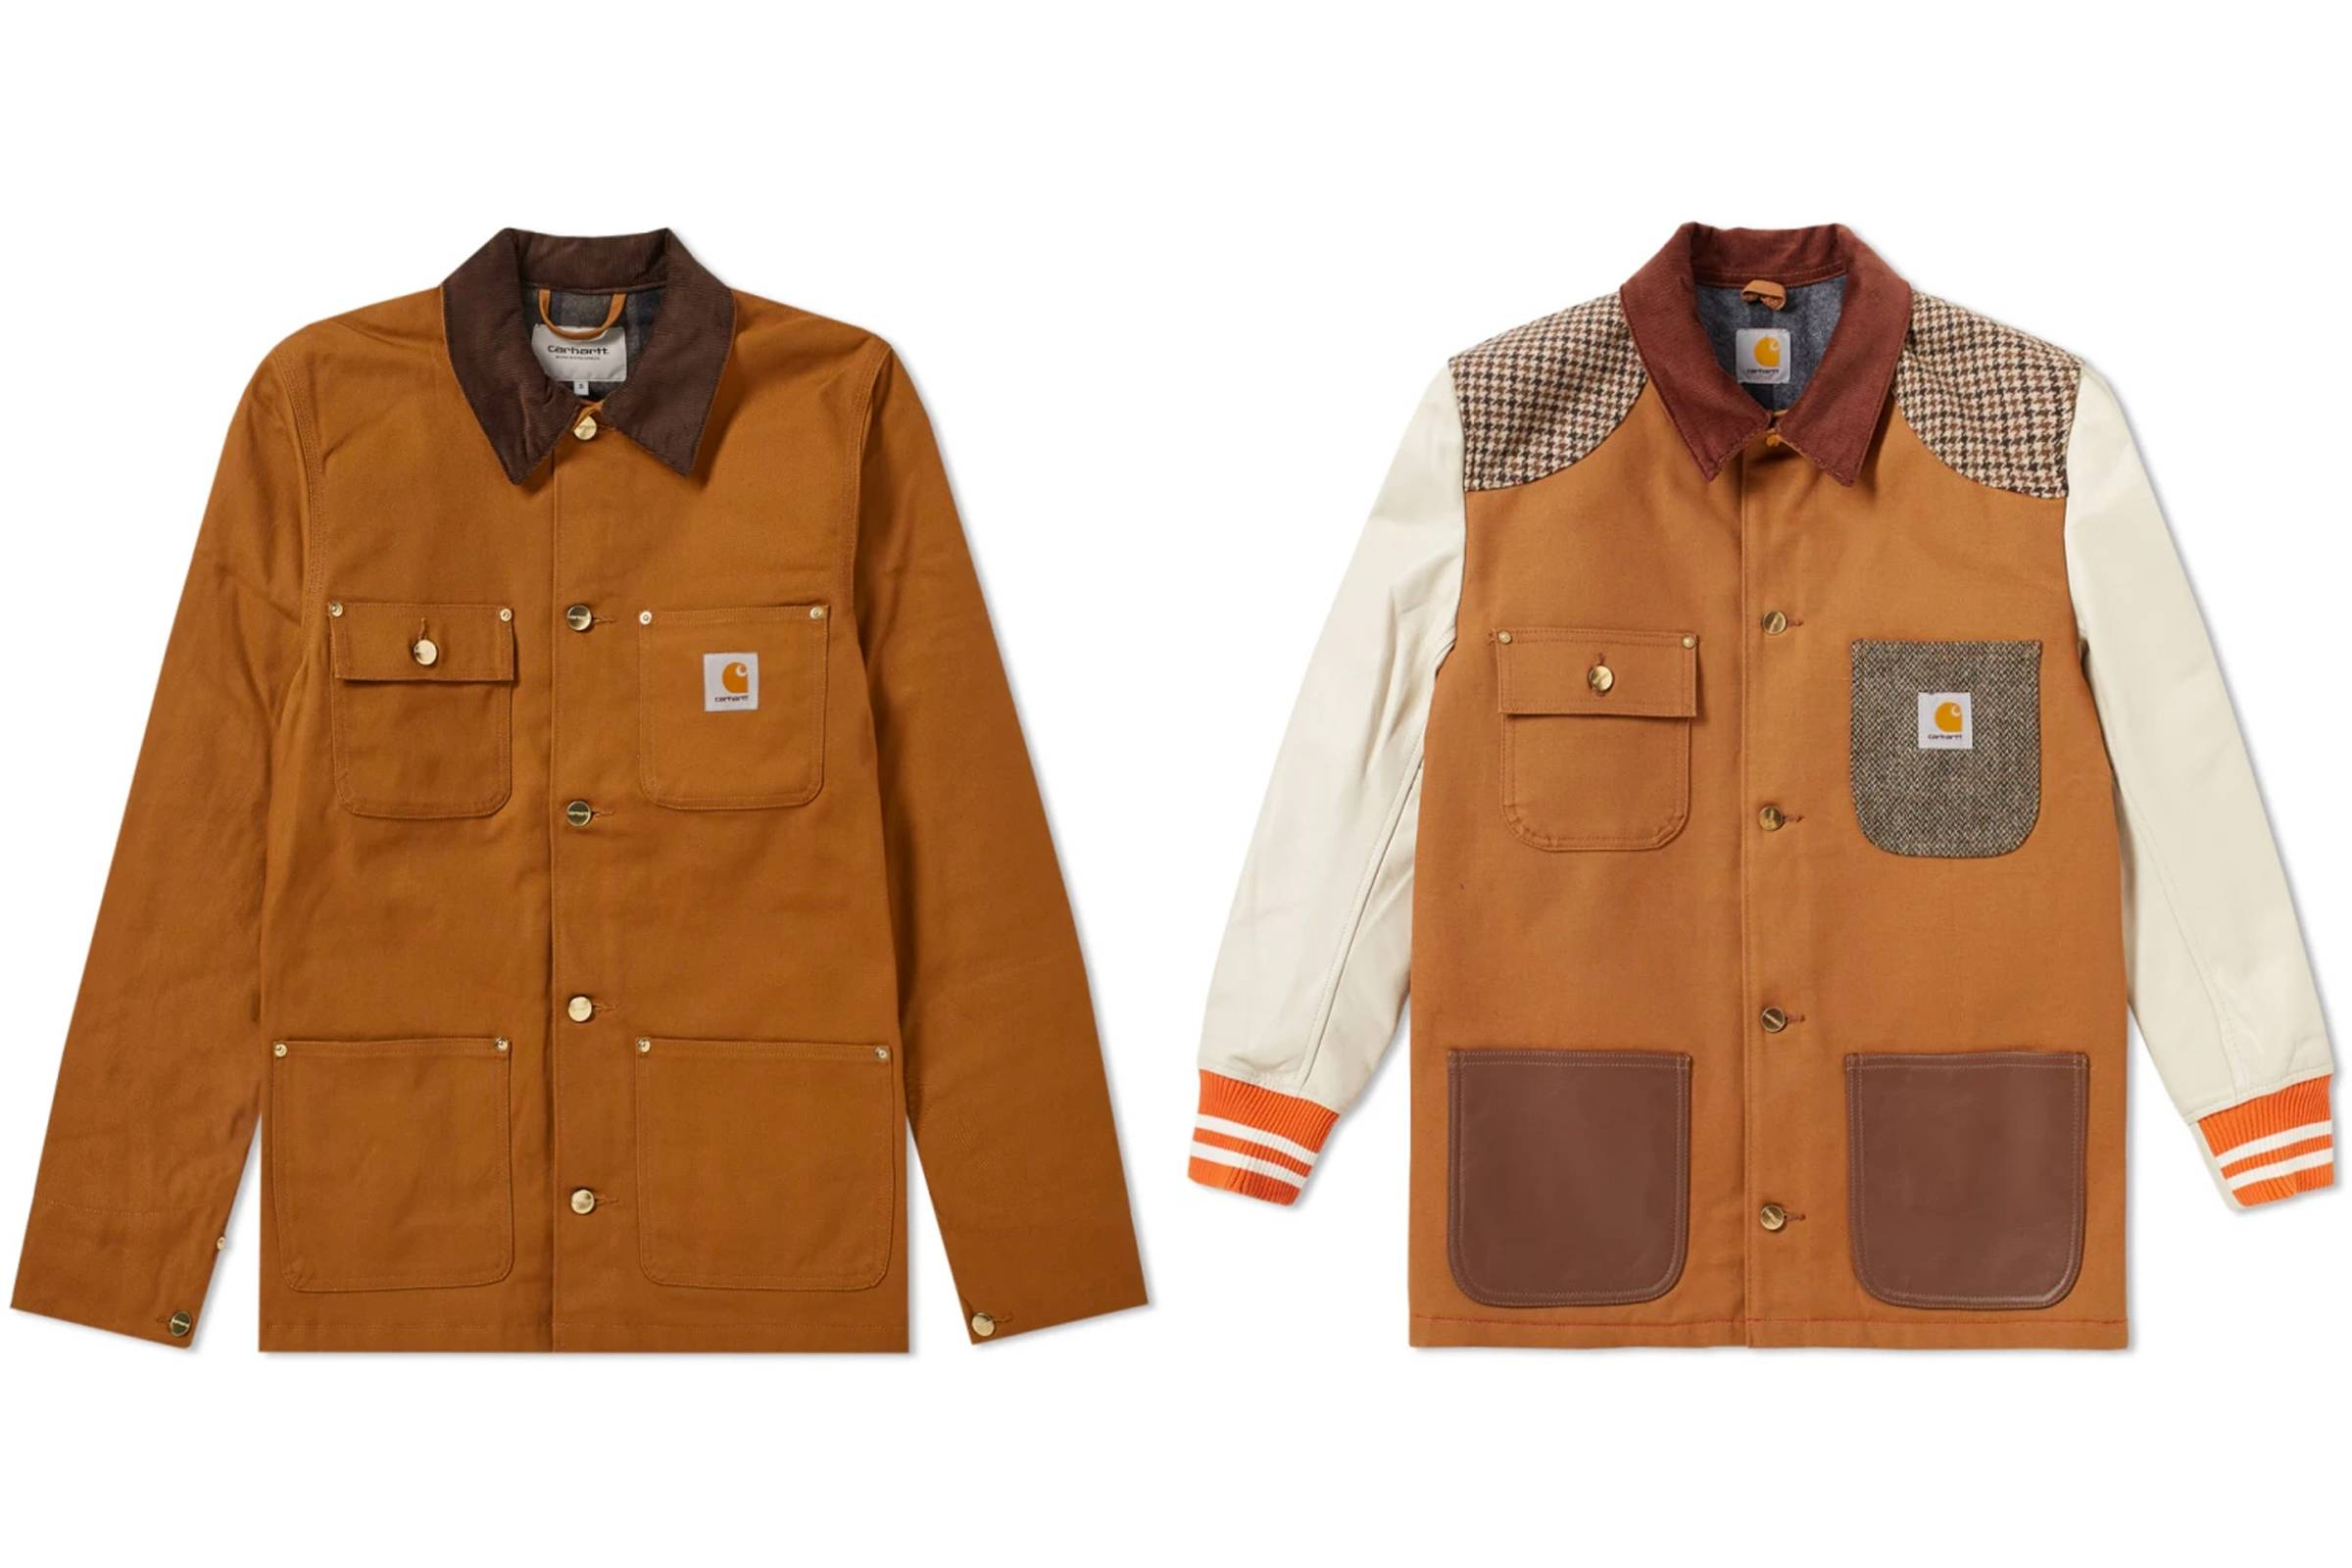 Fashion and the Evolving Vision of of Workwear